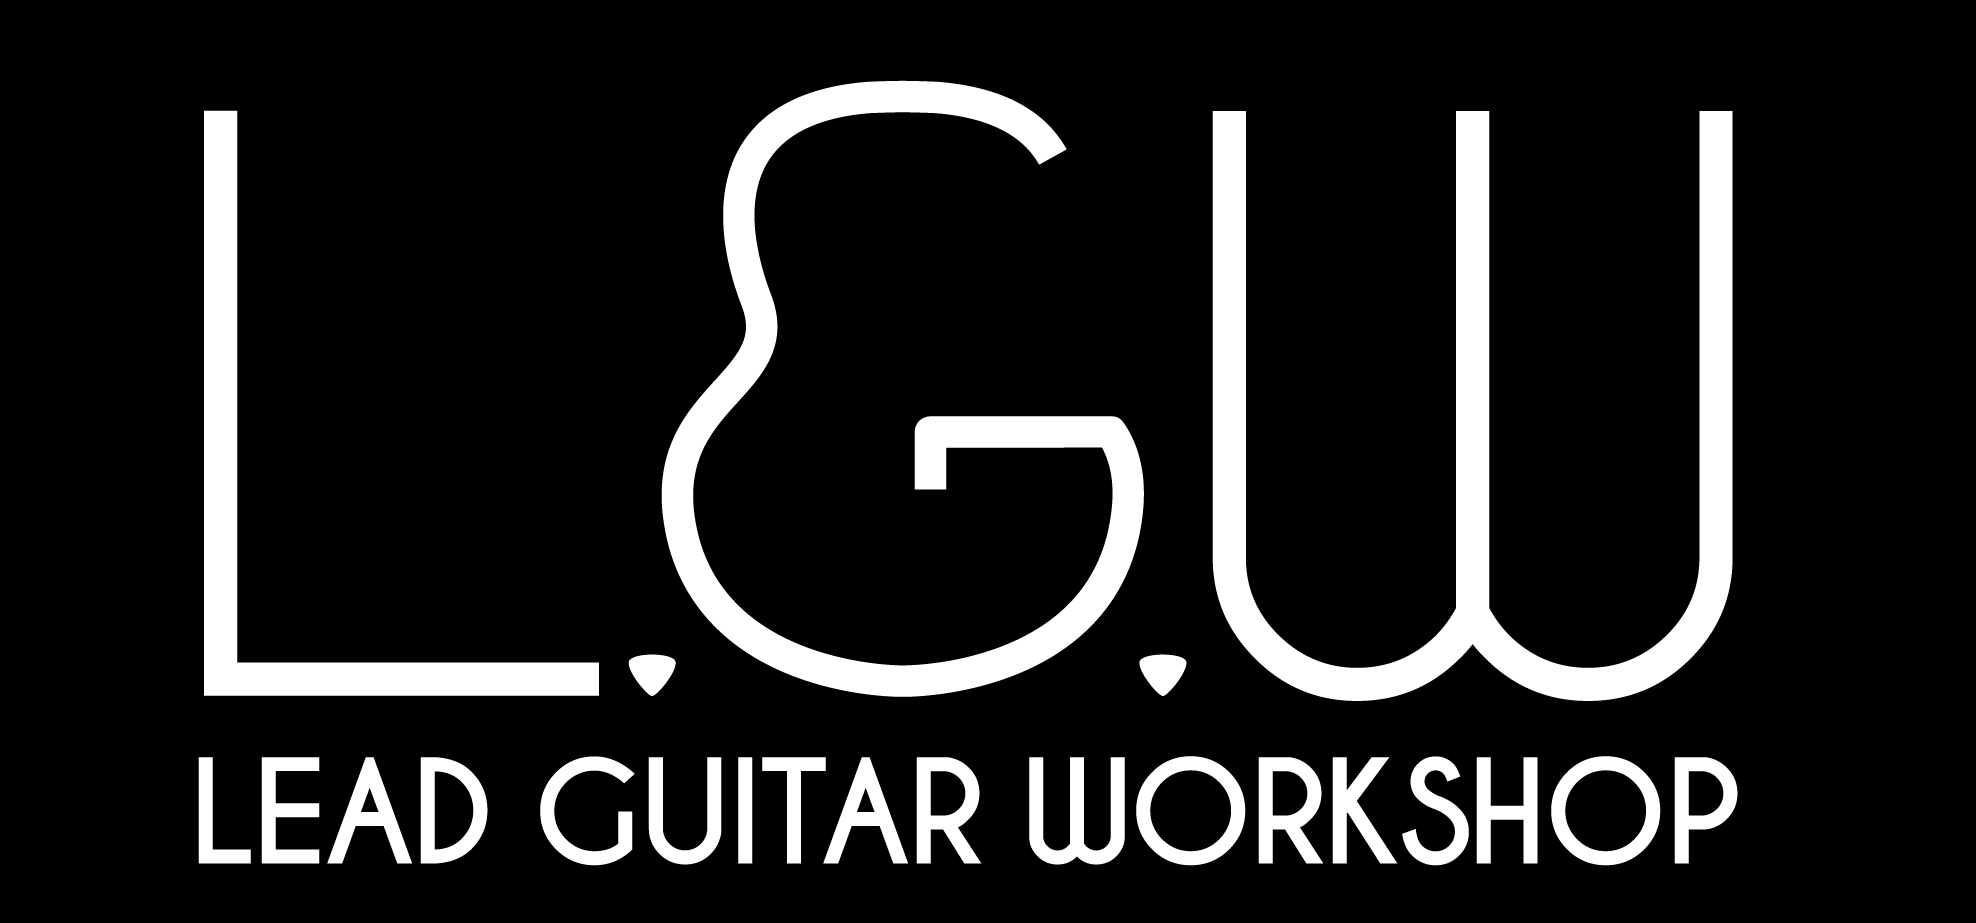 Lead Guitar Workshop